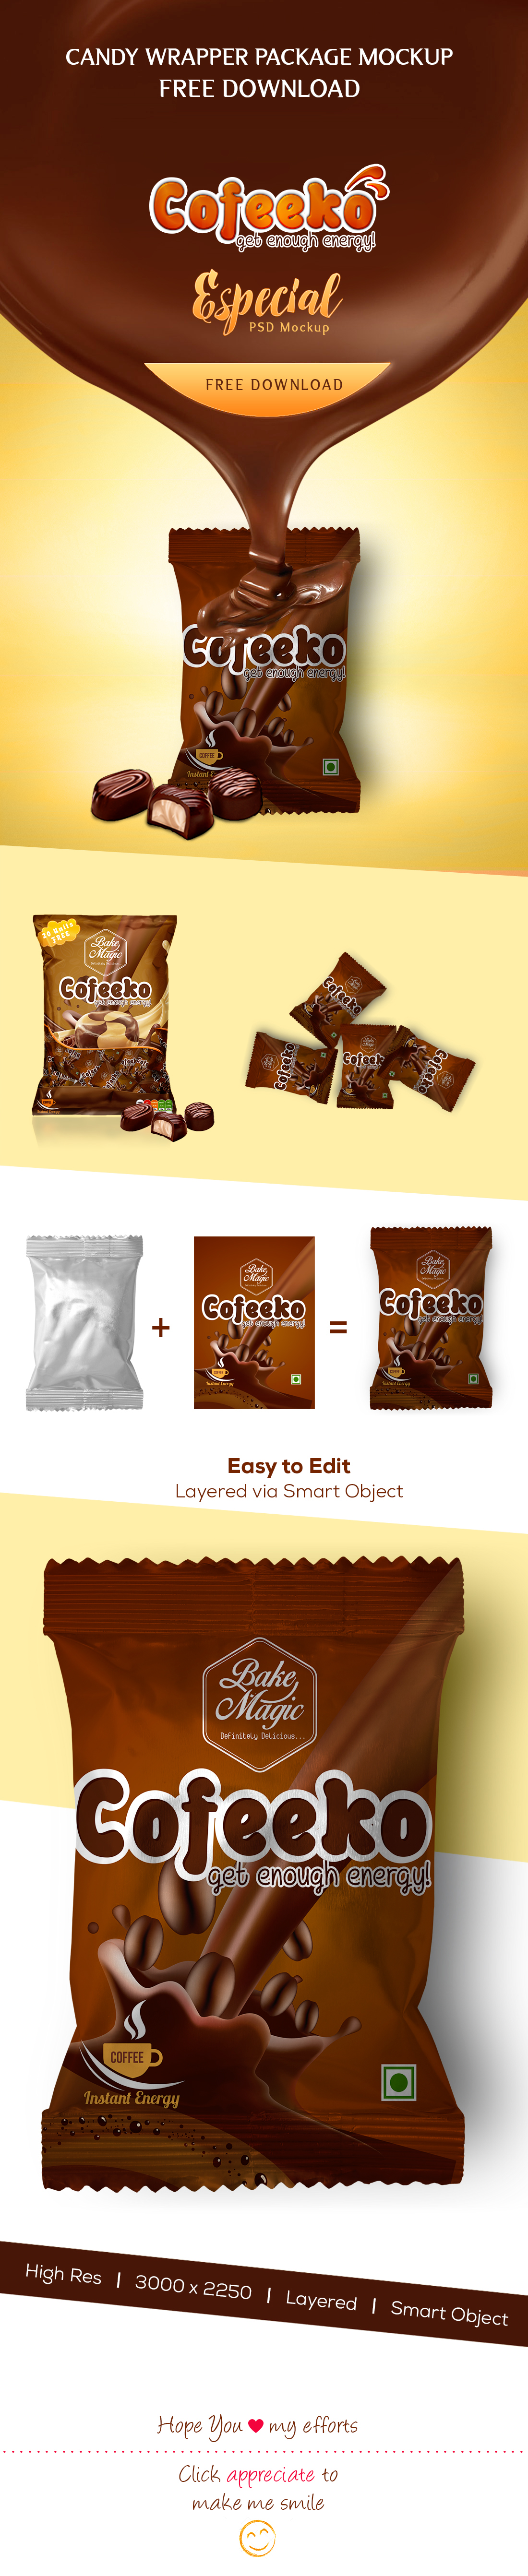 candy wrapper package mock up free download on behance